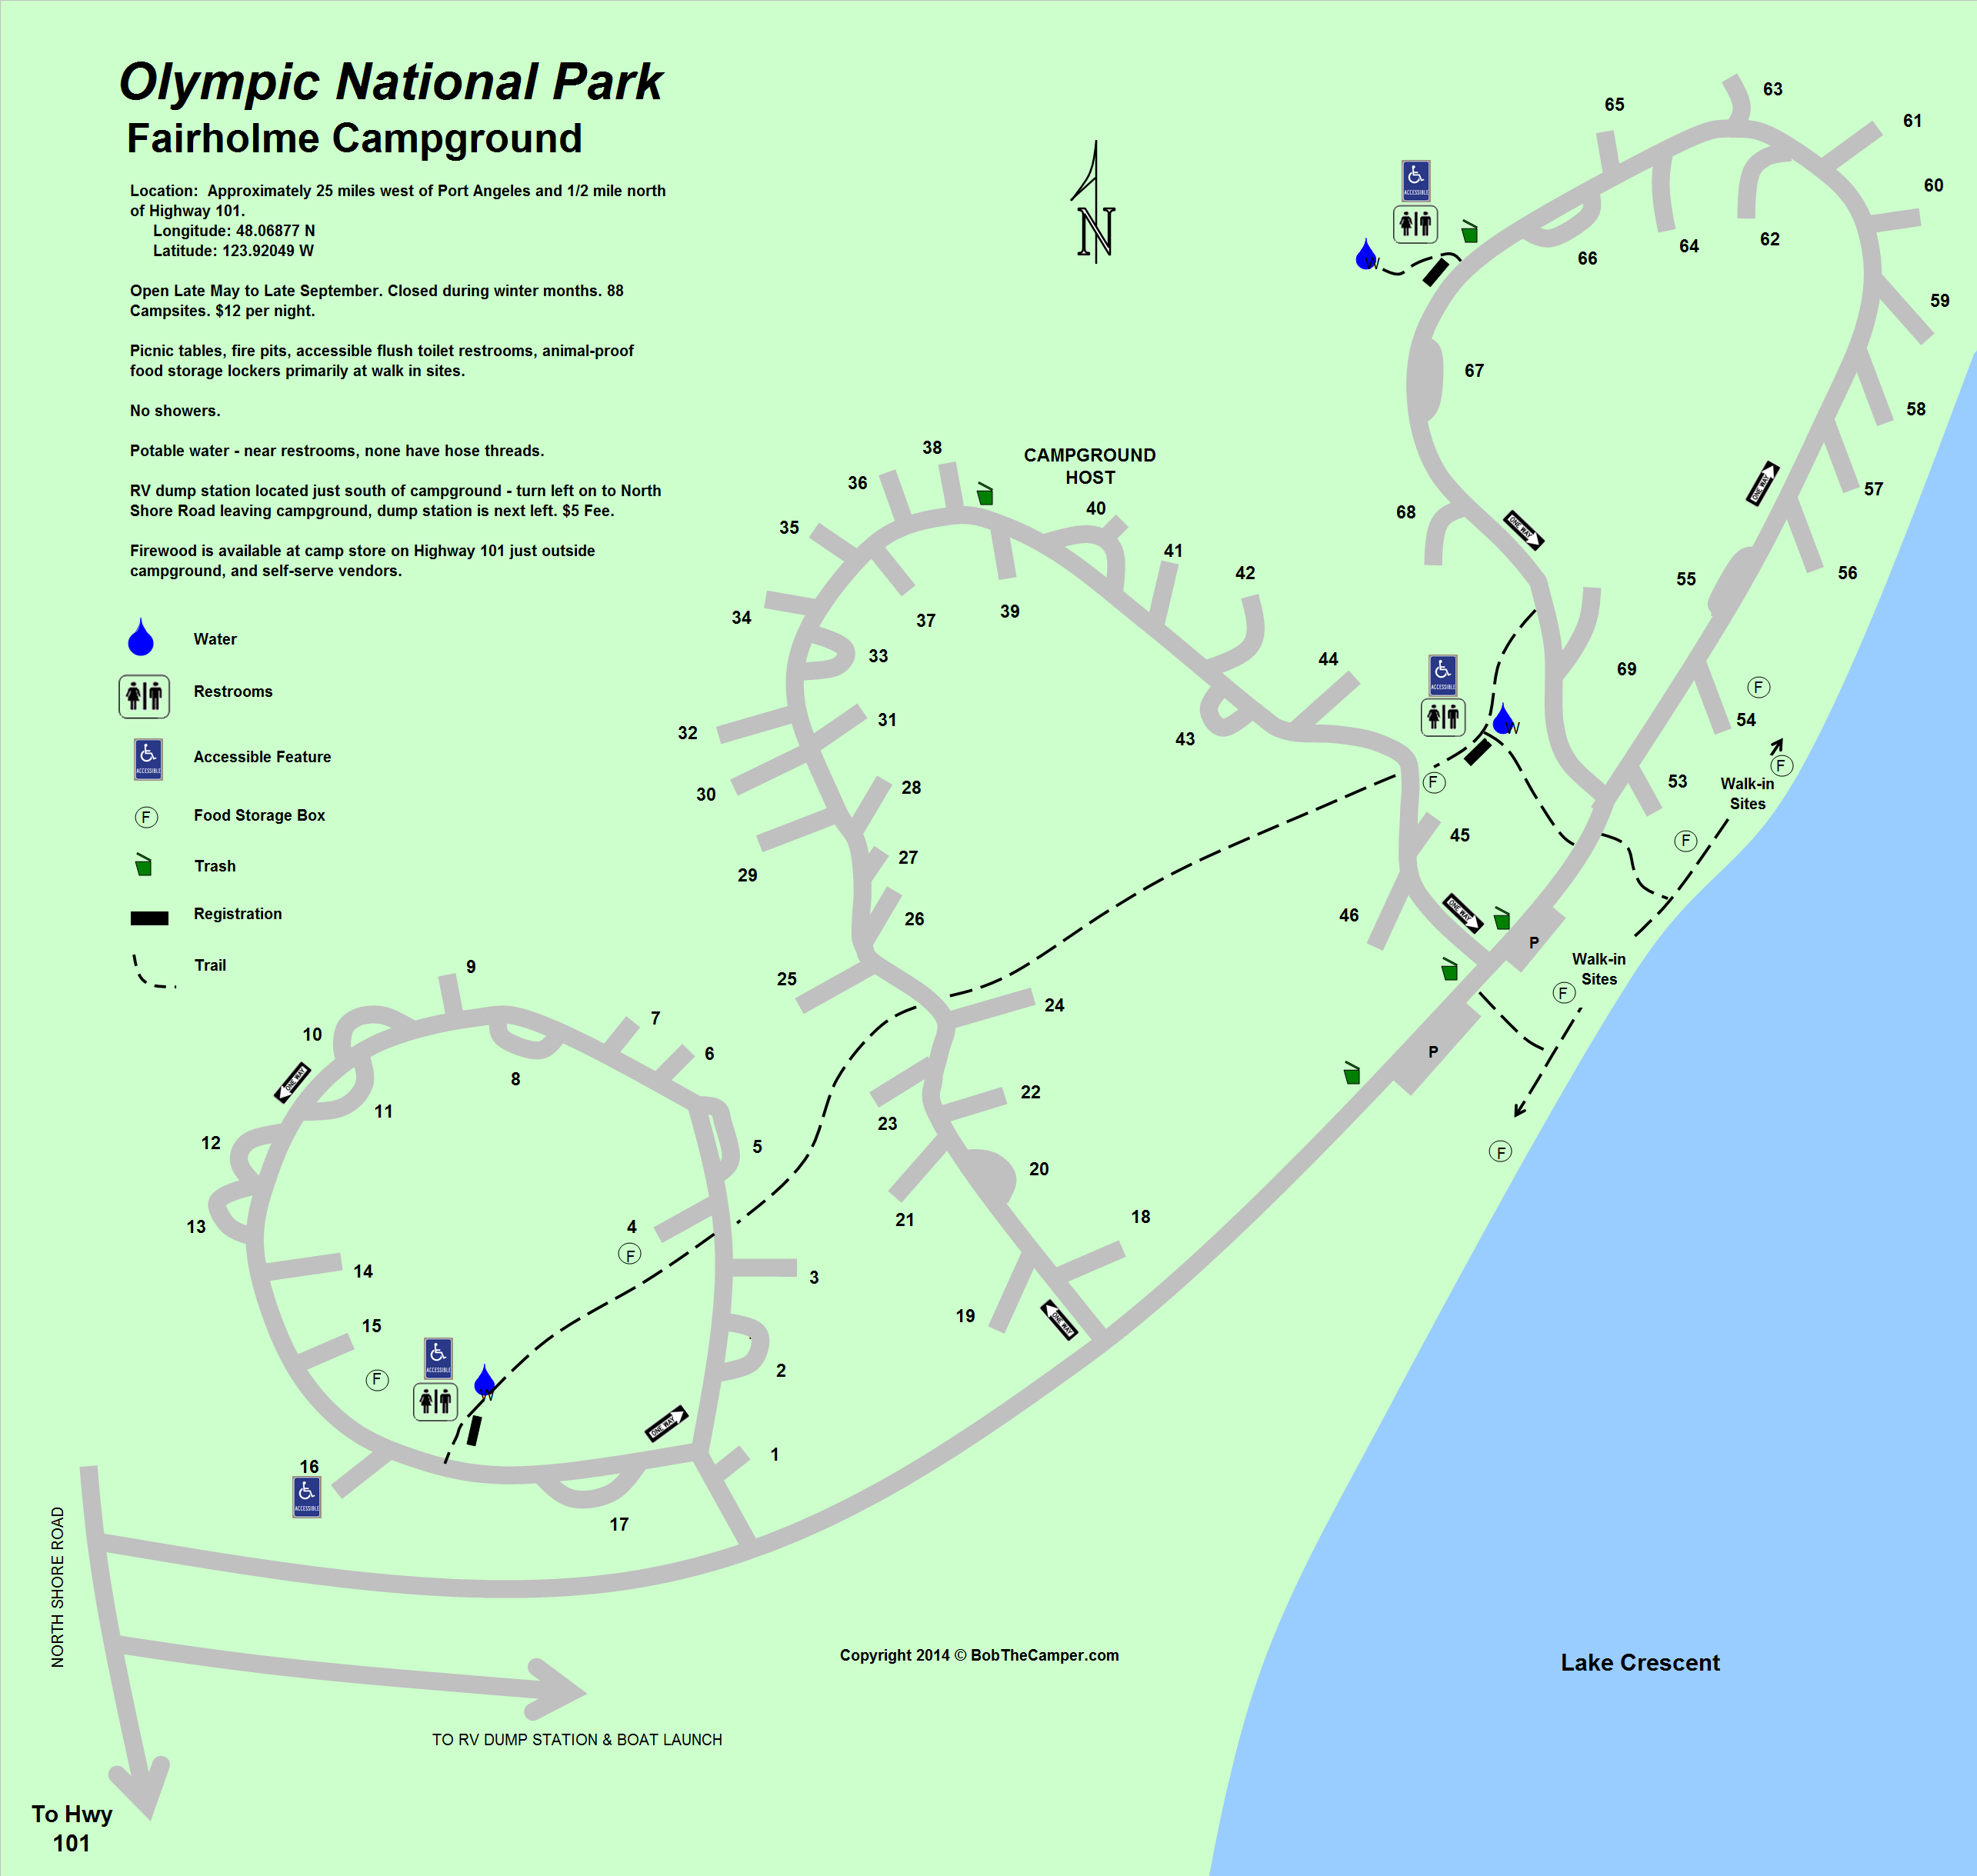 Olympic National Park Fairholme Campground Map Camping and Hiking